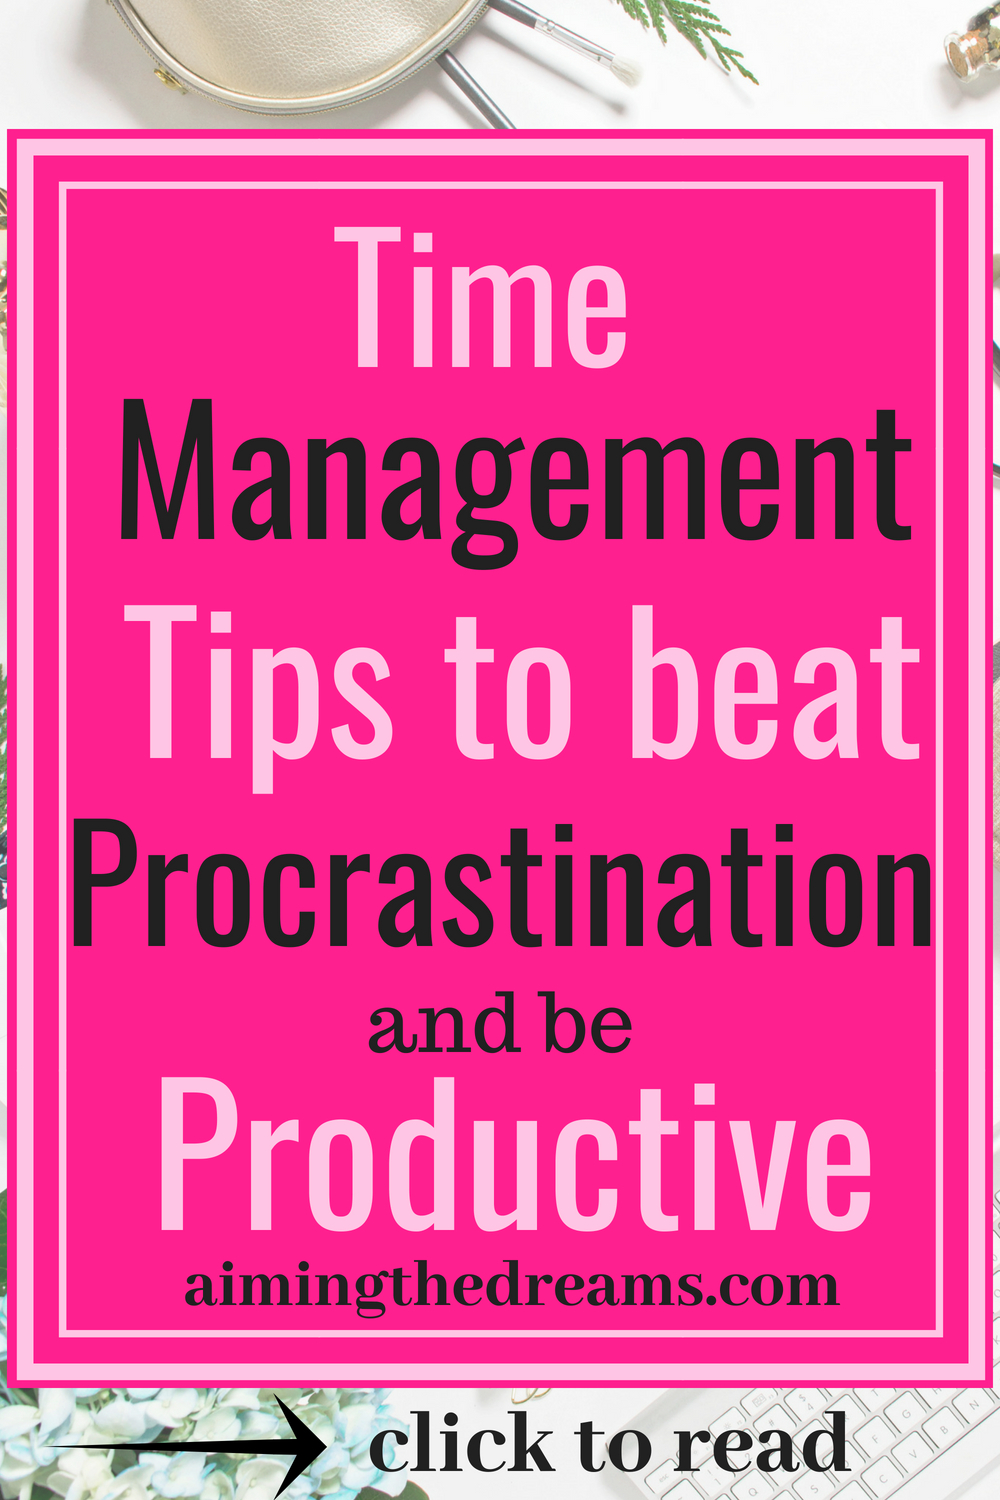 Time management strategies to beat procrastination and be productive. click to read.